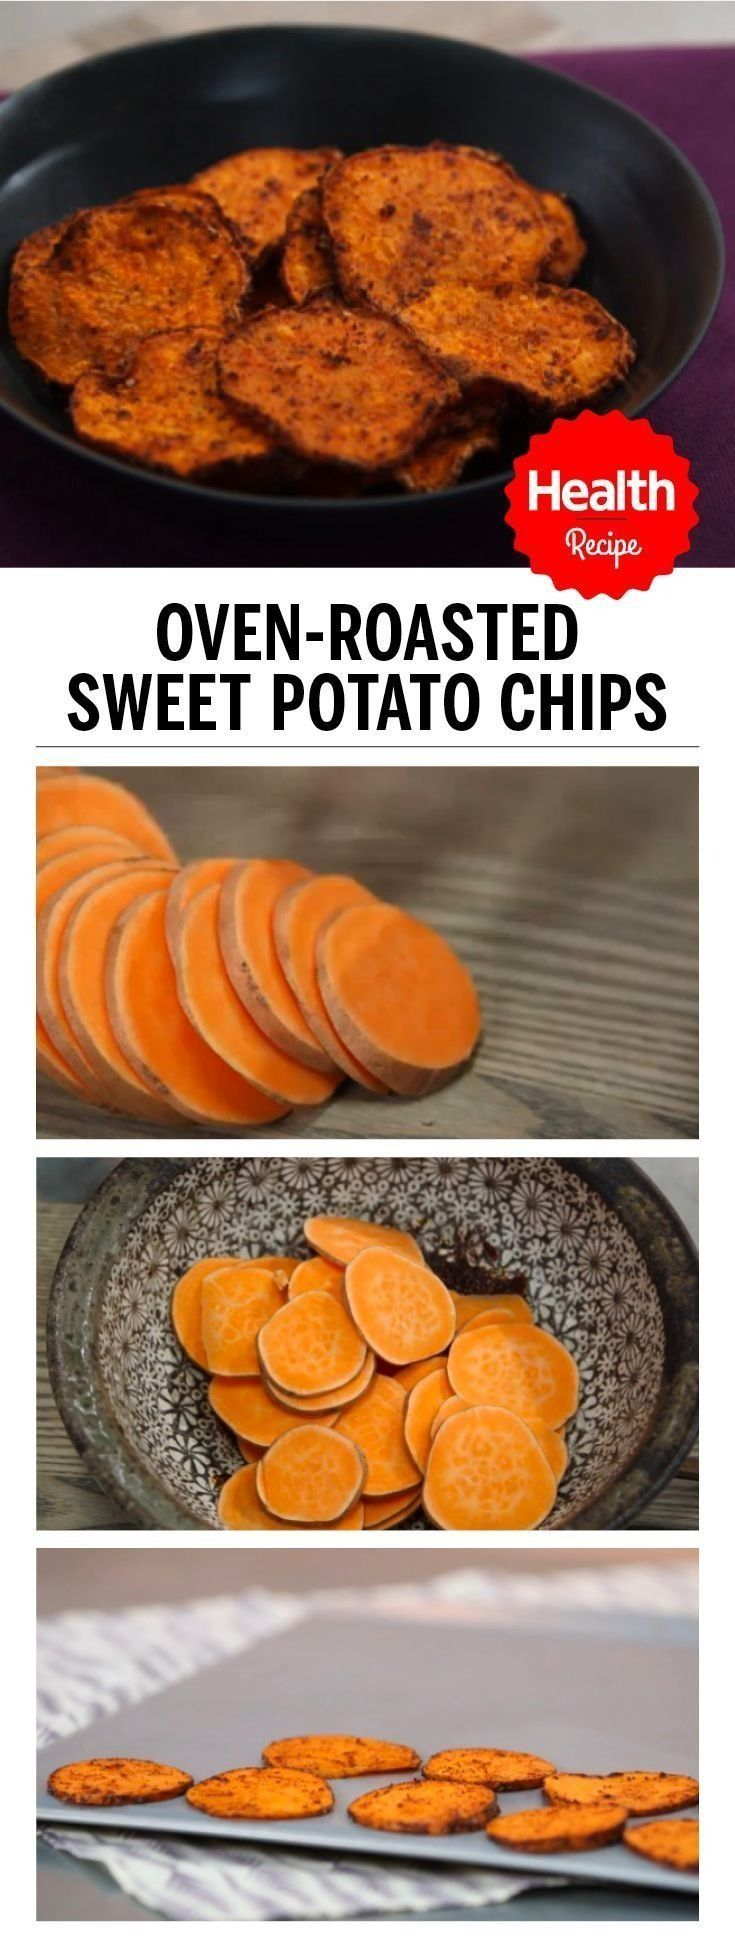 How to make Oven-Roasted Sweet Potato Chips with this easy recipe. Forget going to the store—you can make these chips right in your own oven. Here's how to make crispy, oven-roasted sweet potato chips that are seasoned with chili powder for an extra kick. | Health.com